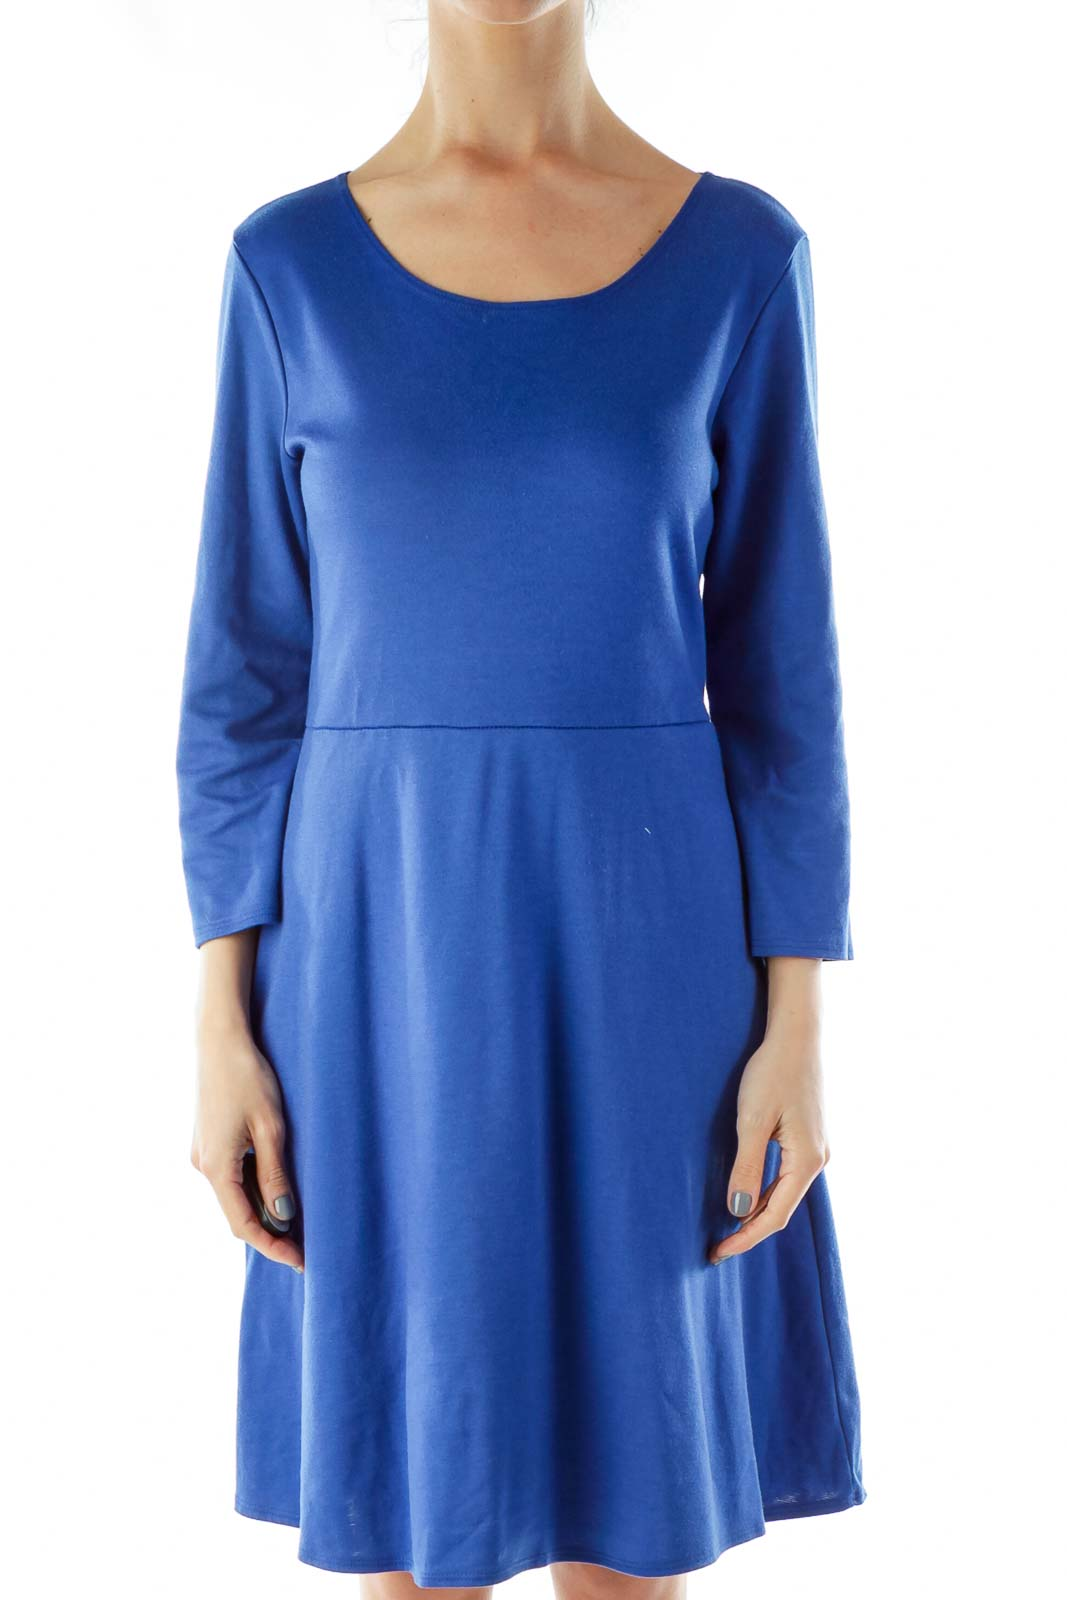 Blue A-Line Work Dress Front